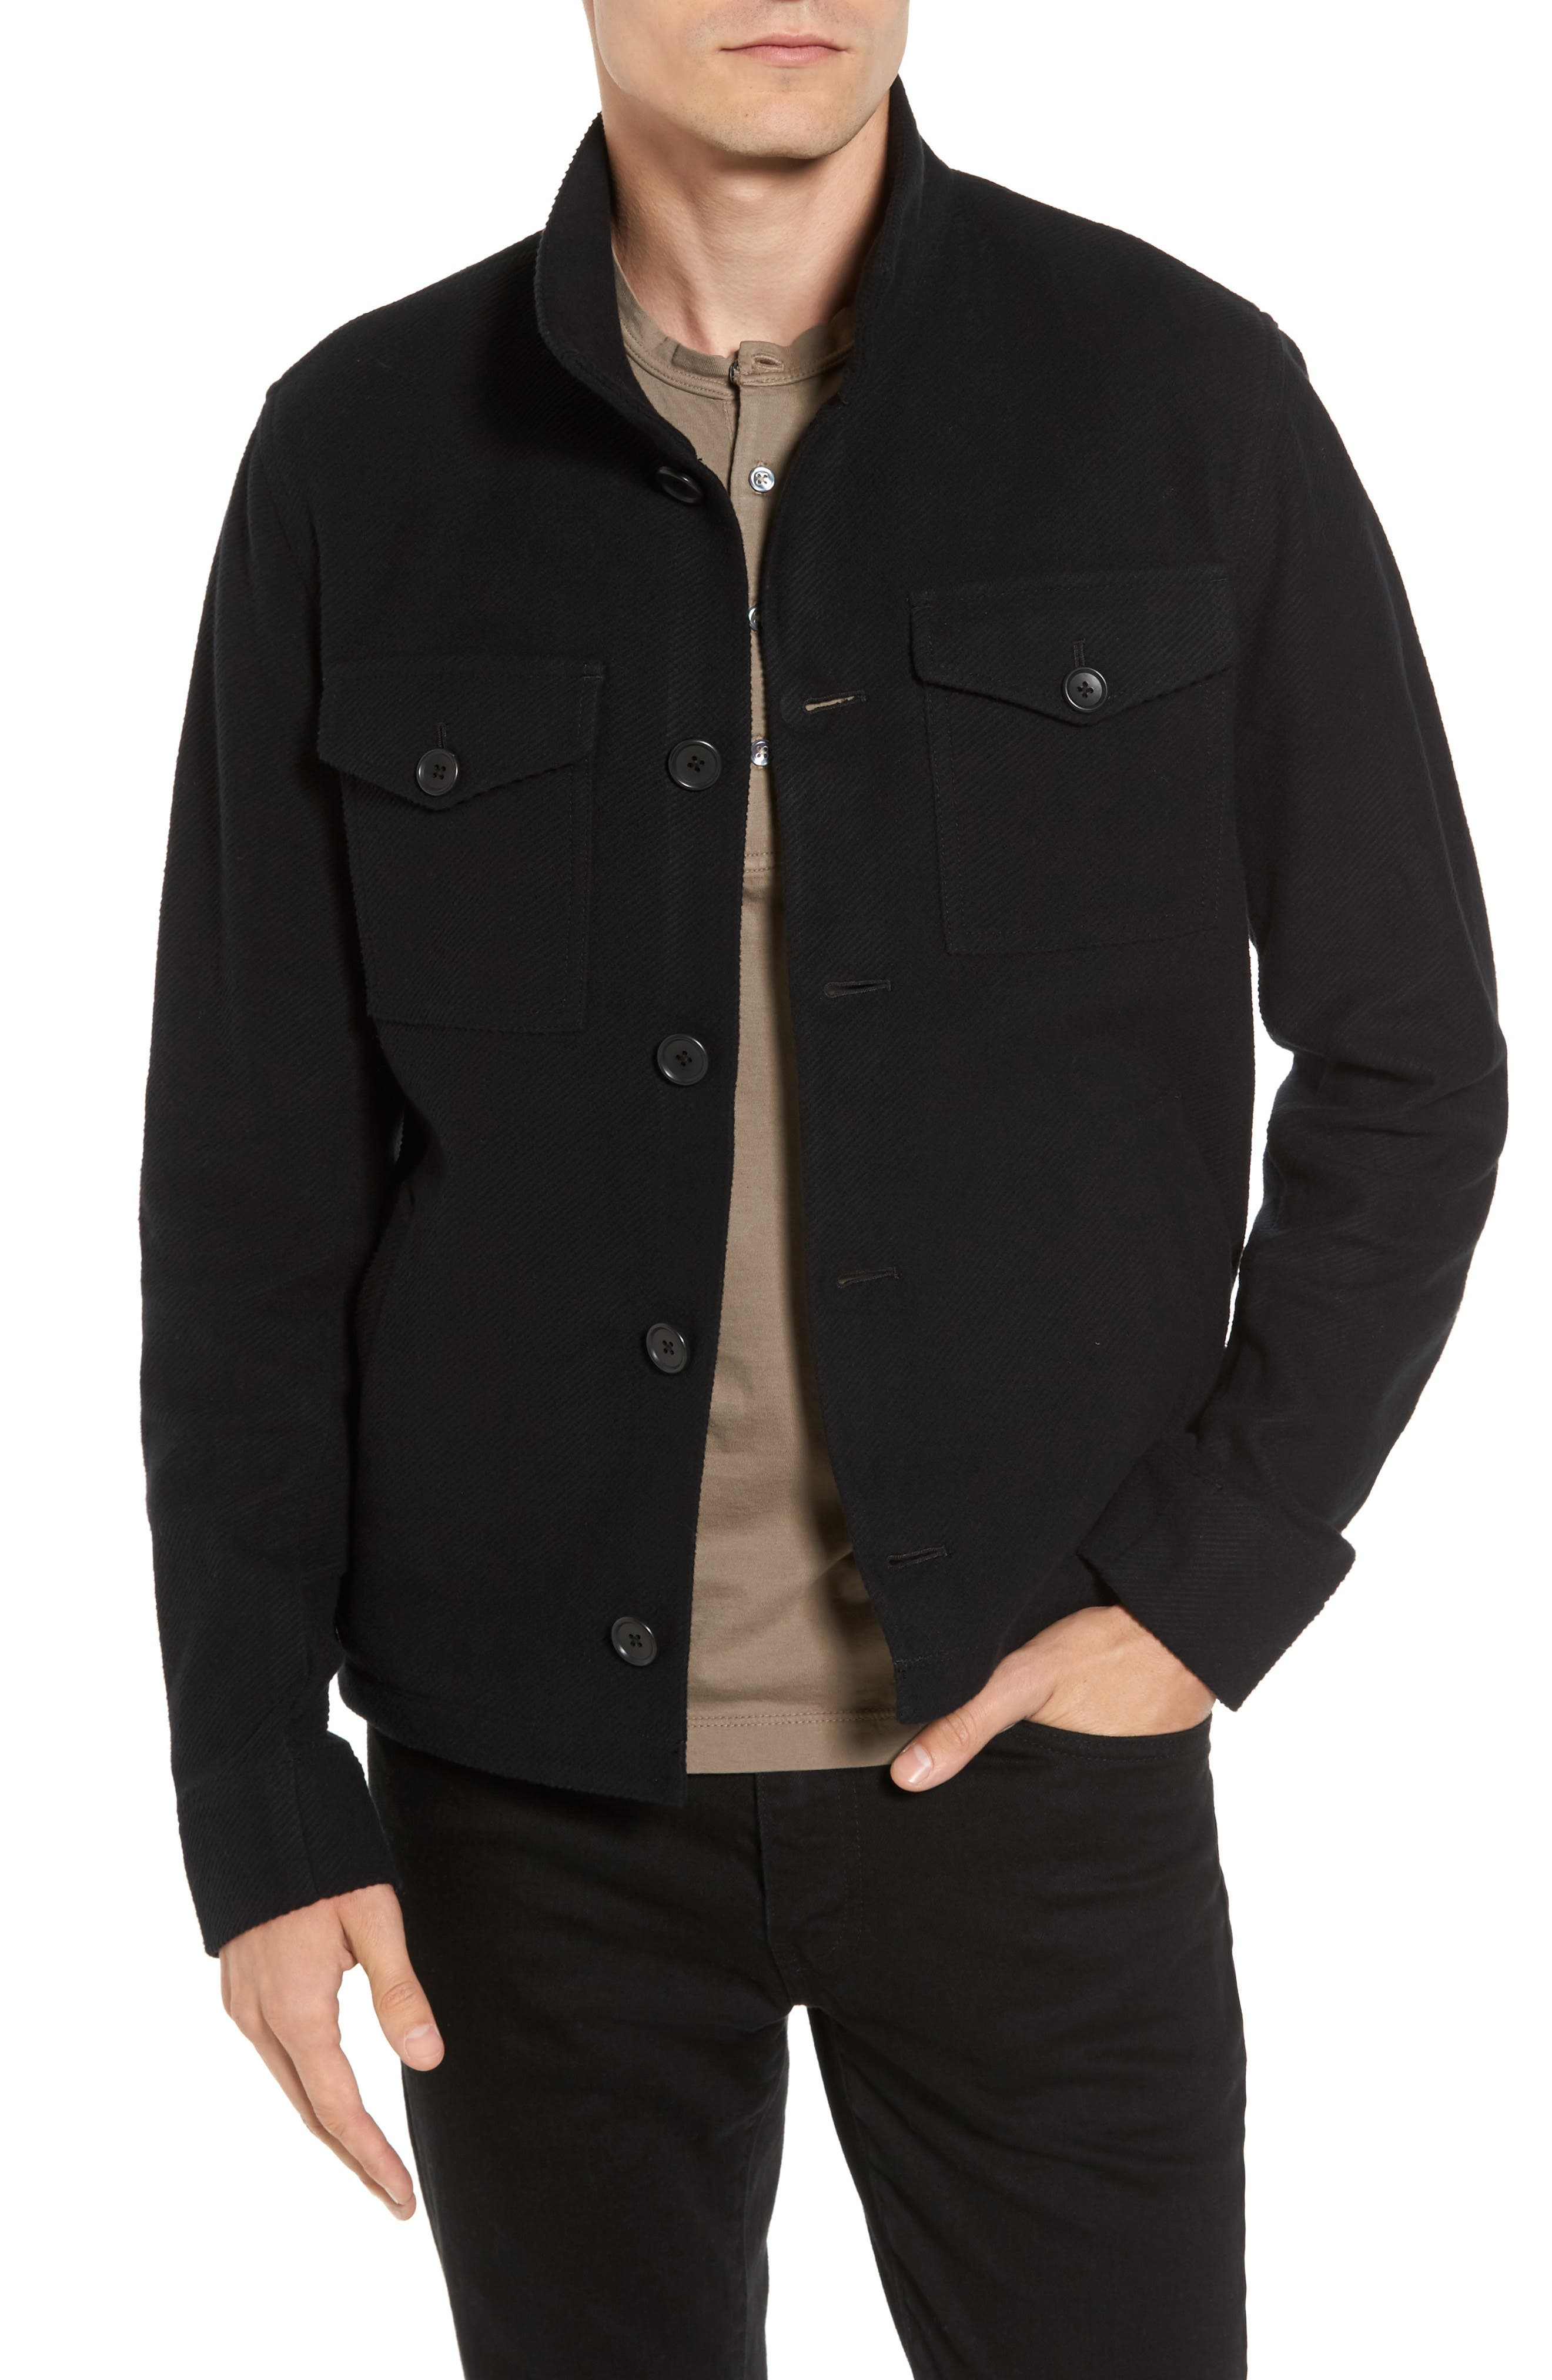 Alternate Image 1 Selected - James Perse Drill Button Front Knit Jacket